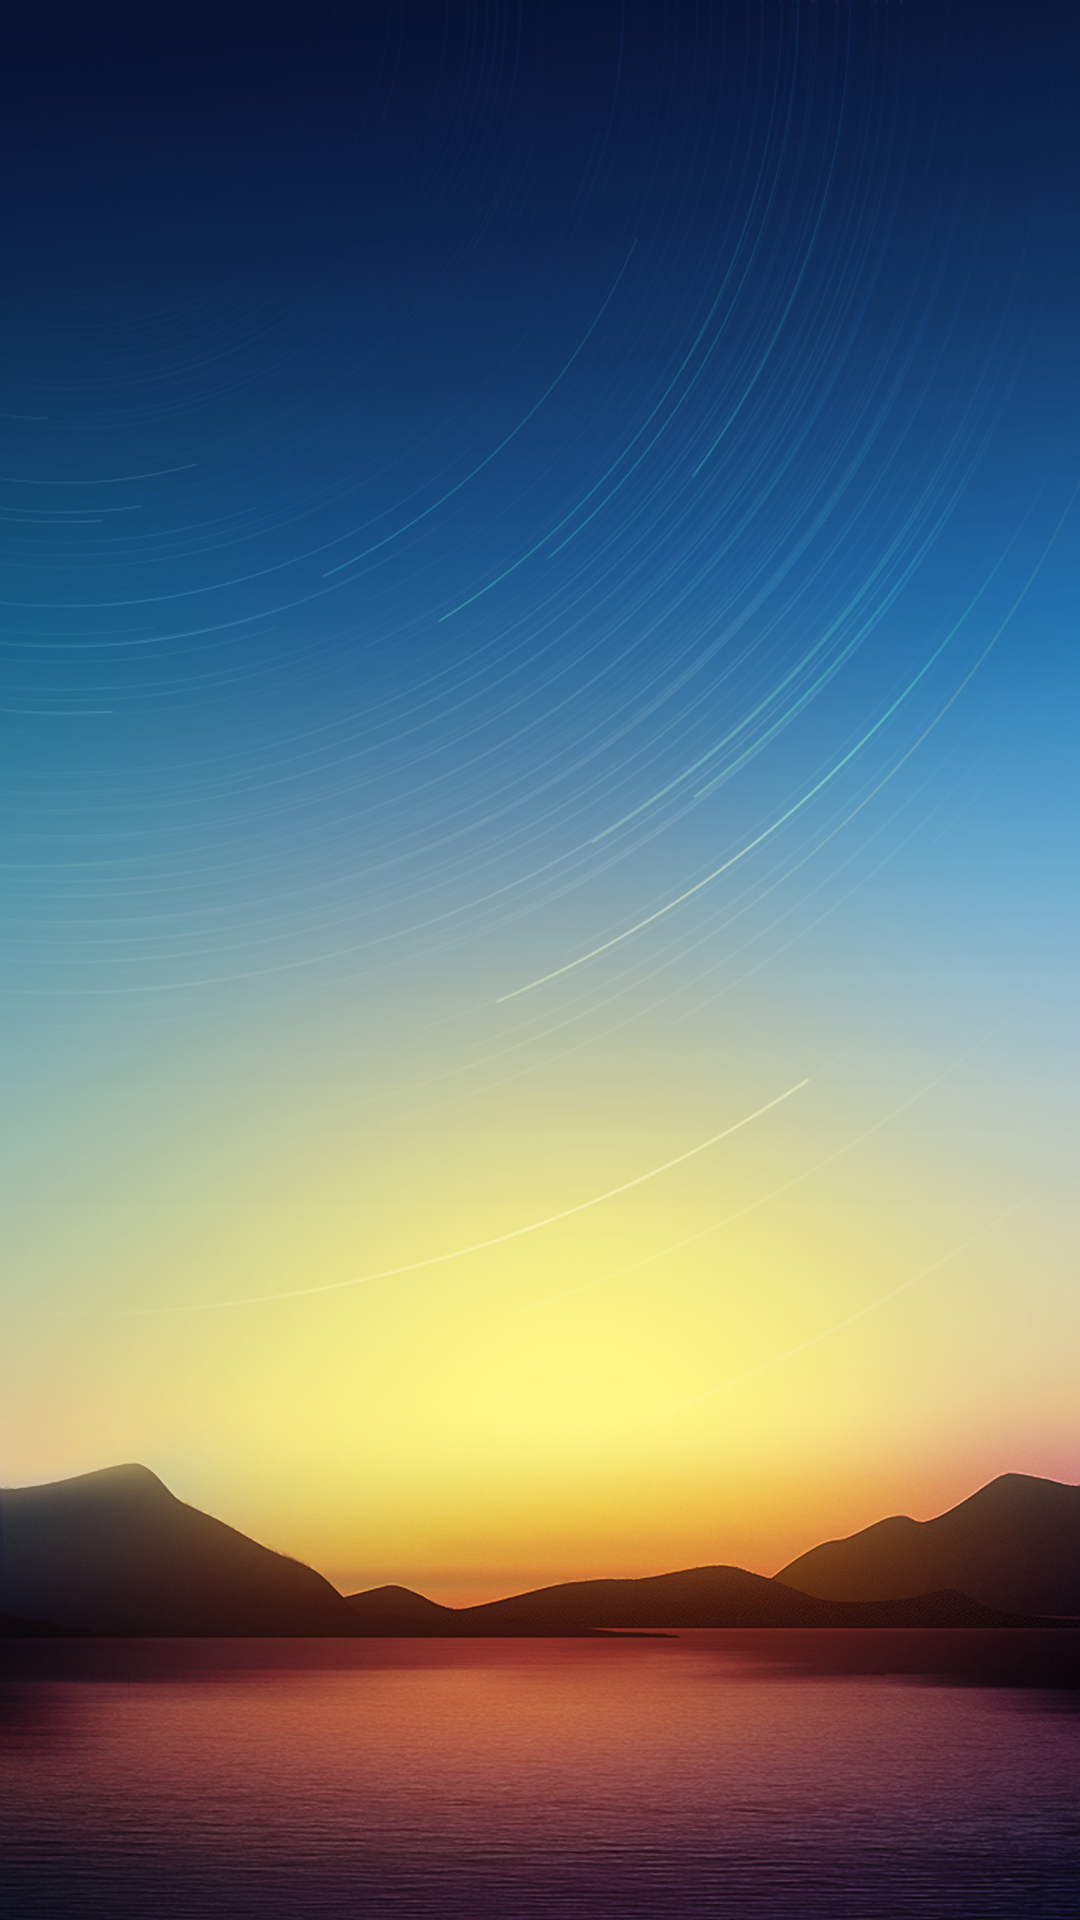 hd cell phone wallpaper Samsung Galaxy S5 Blog Galaxys5manual com